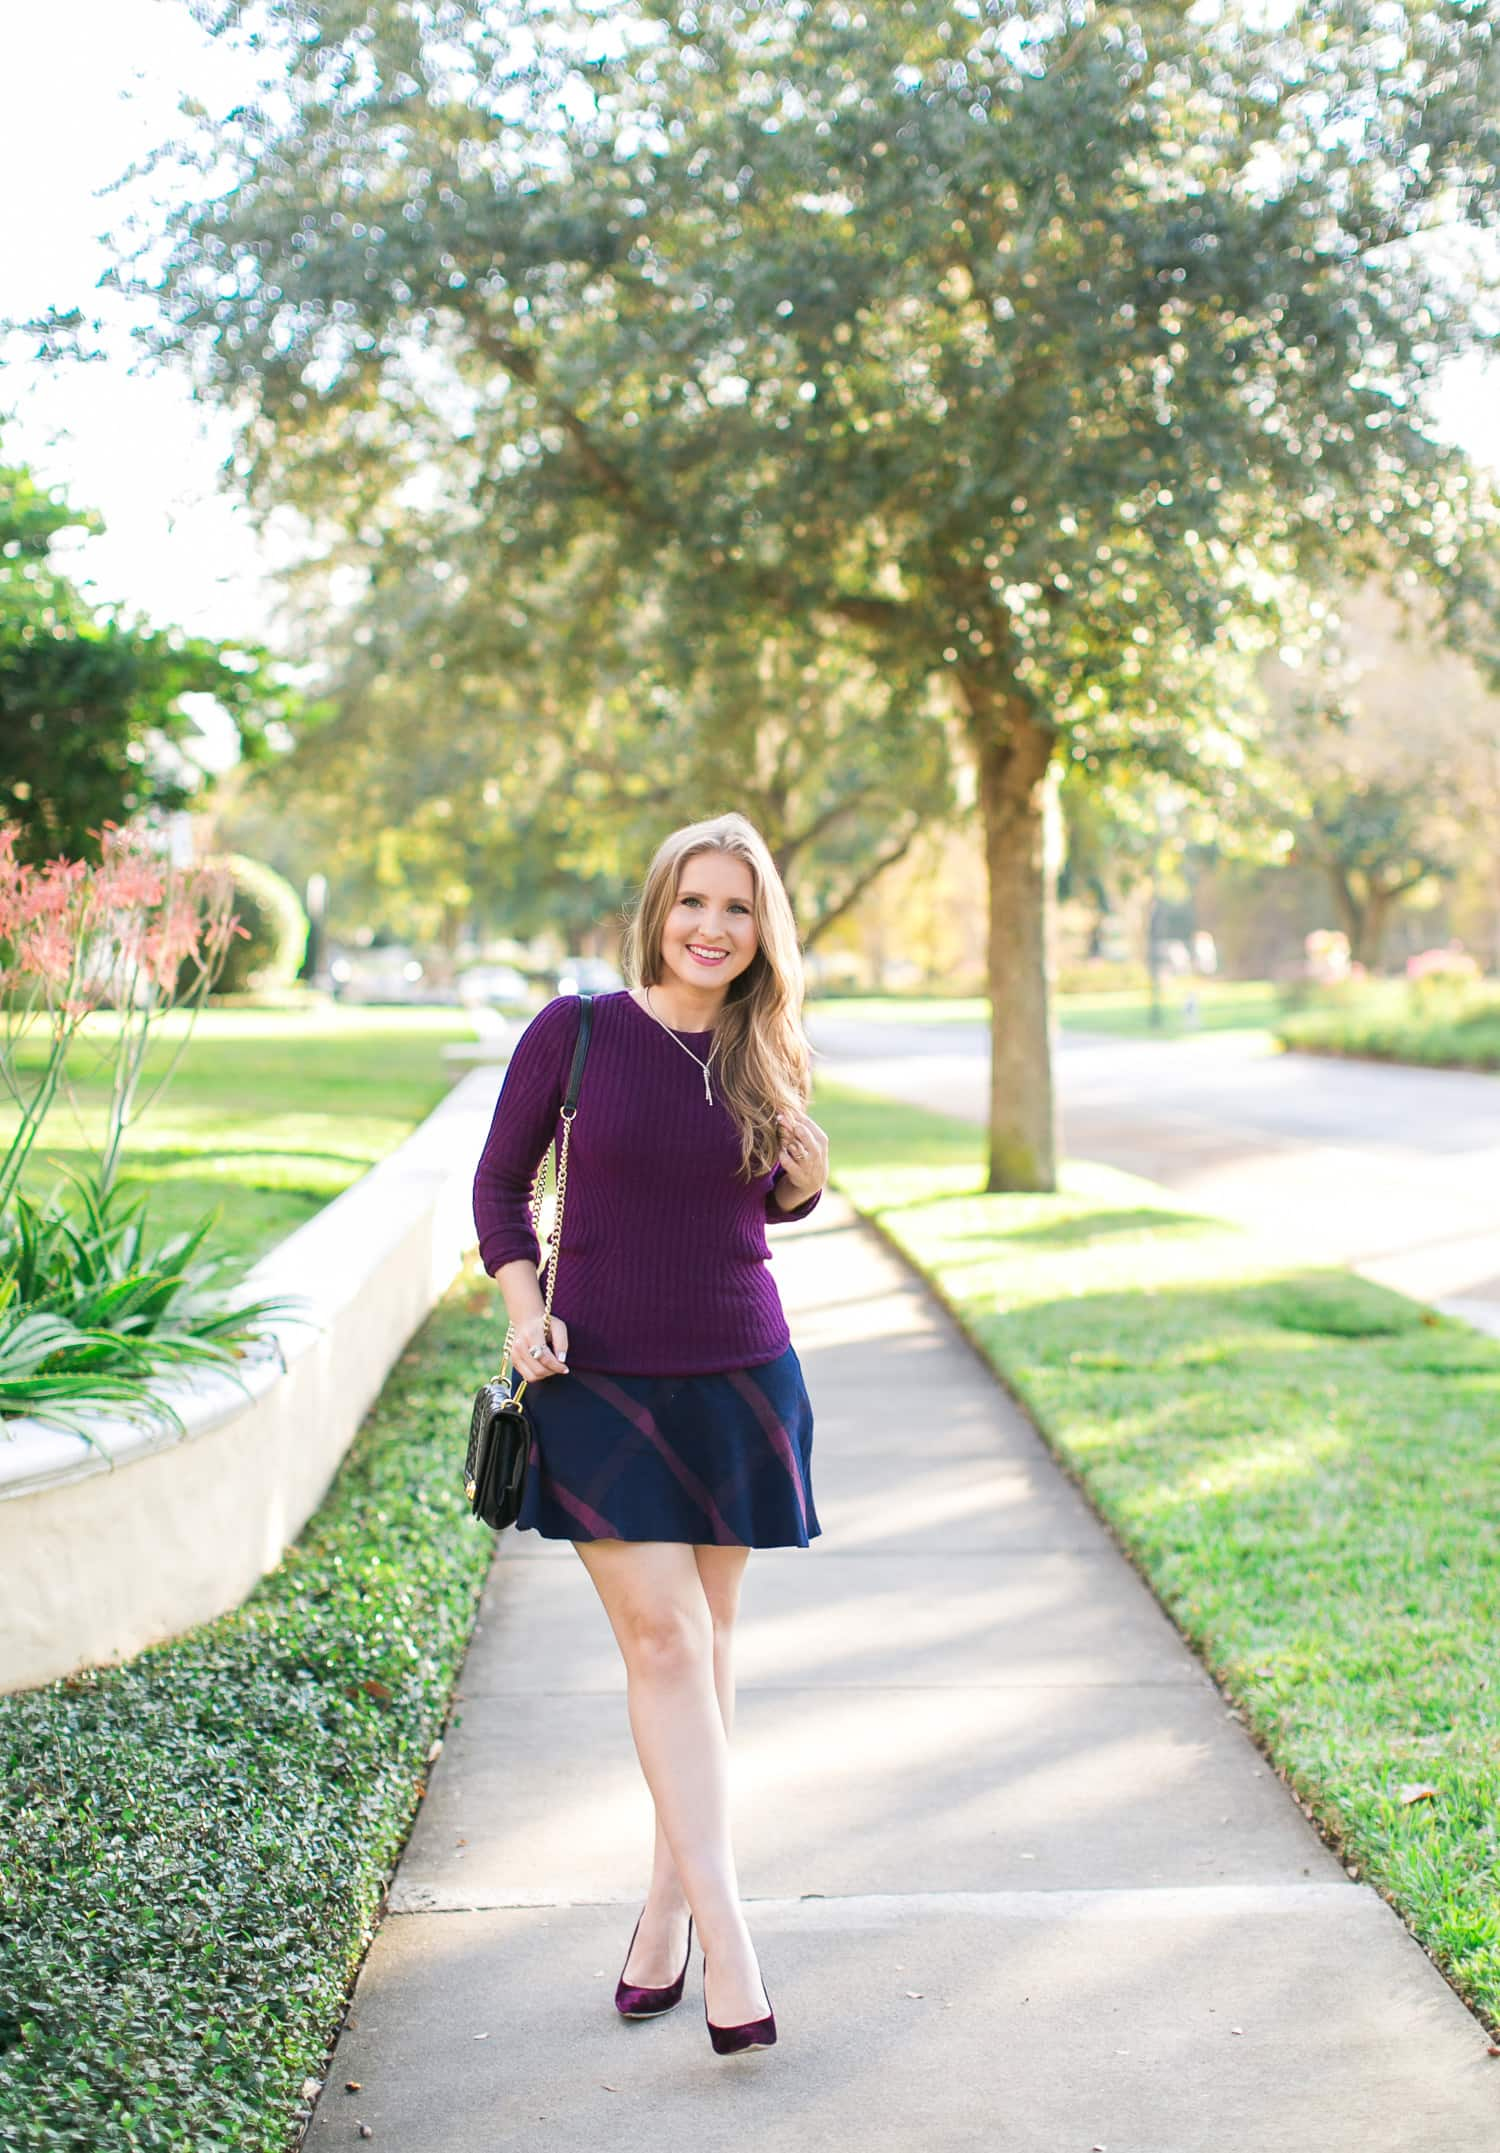 3 Easy Ways to Style a Sweater and Skirt | Ashley Brooke Nicholas ...